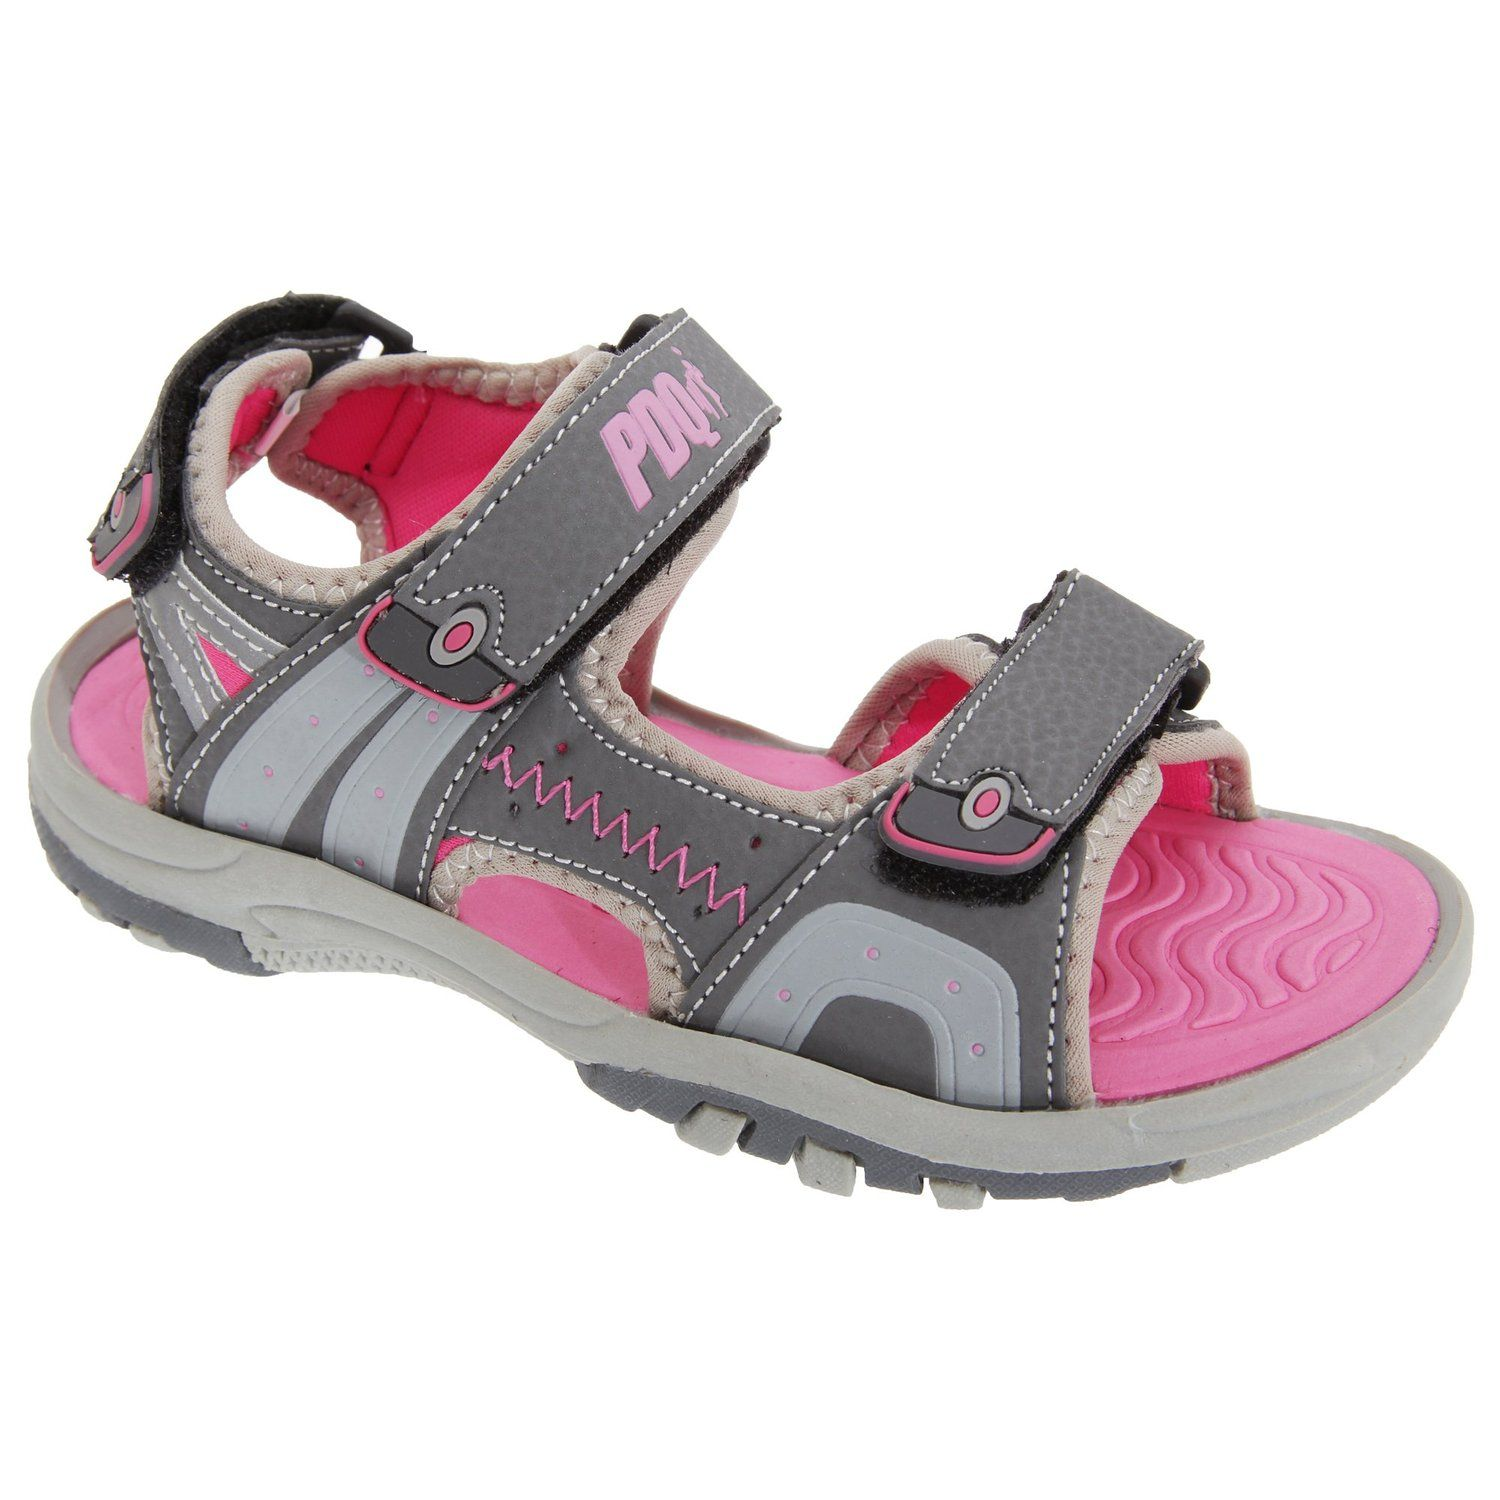 c415df7d0cc8 PDQ Kids Unisex 3 Touch Fastening Sports Sandals    Discover this special  outdoor gear